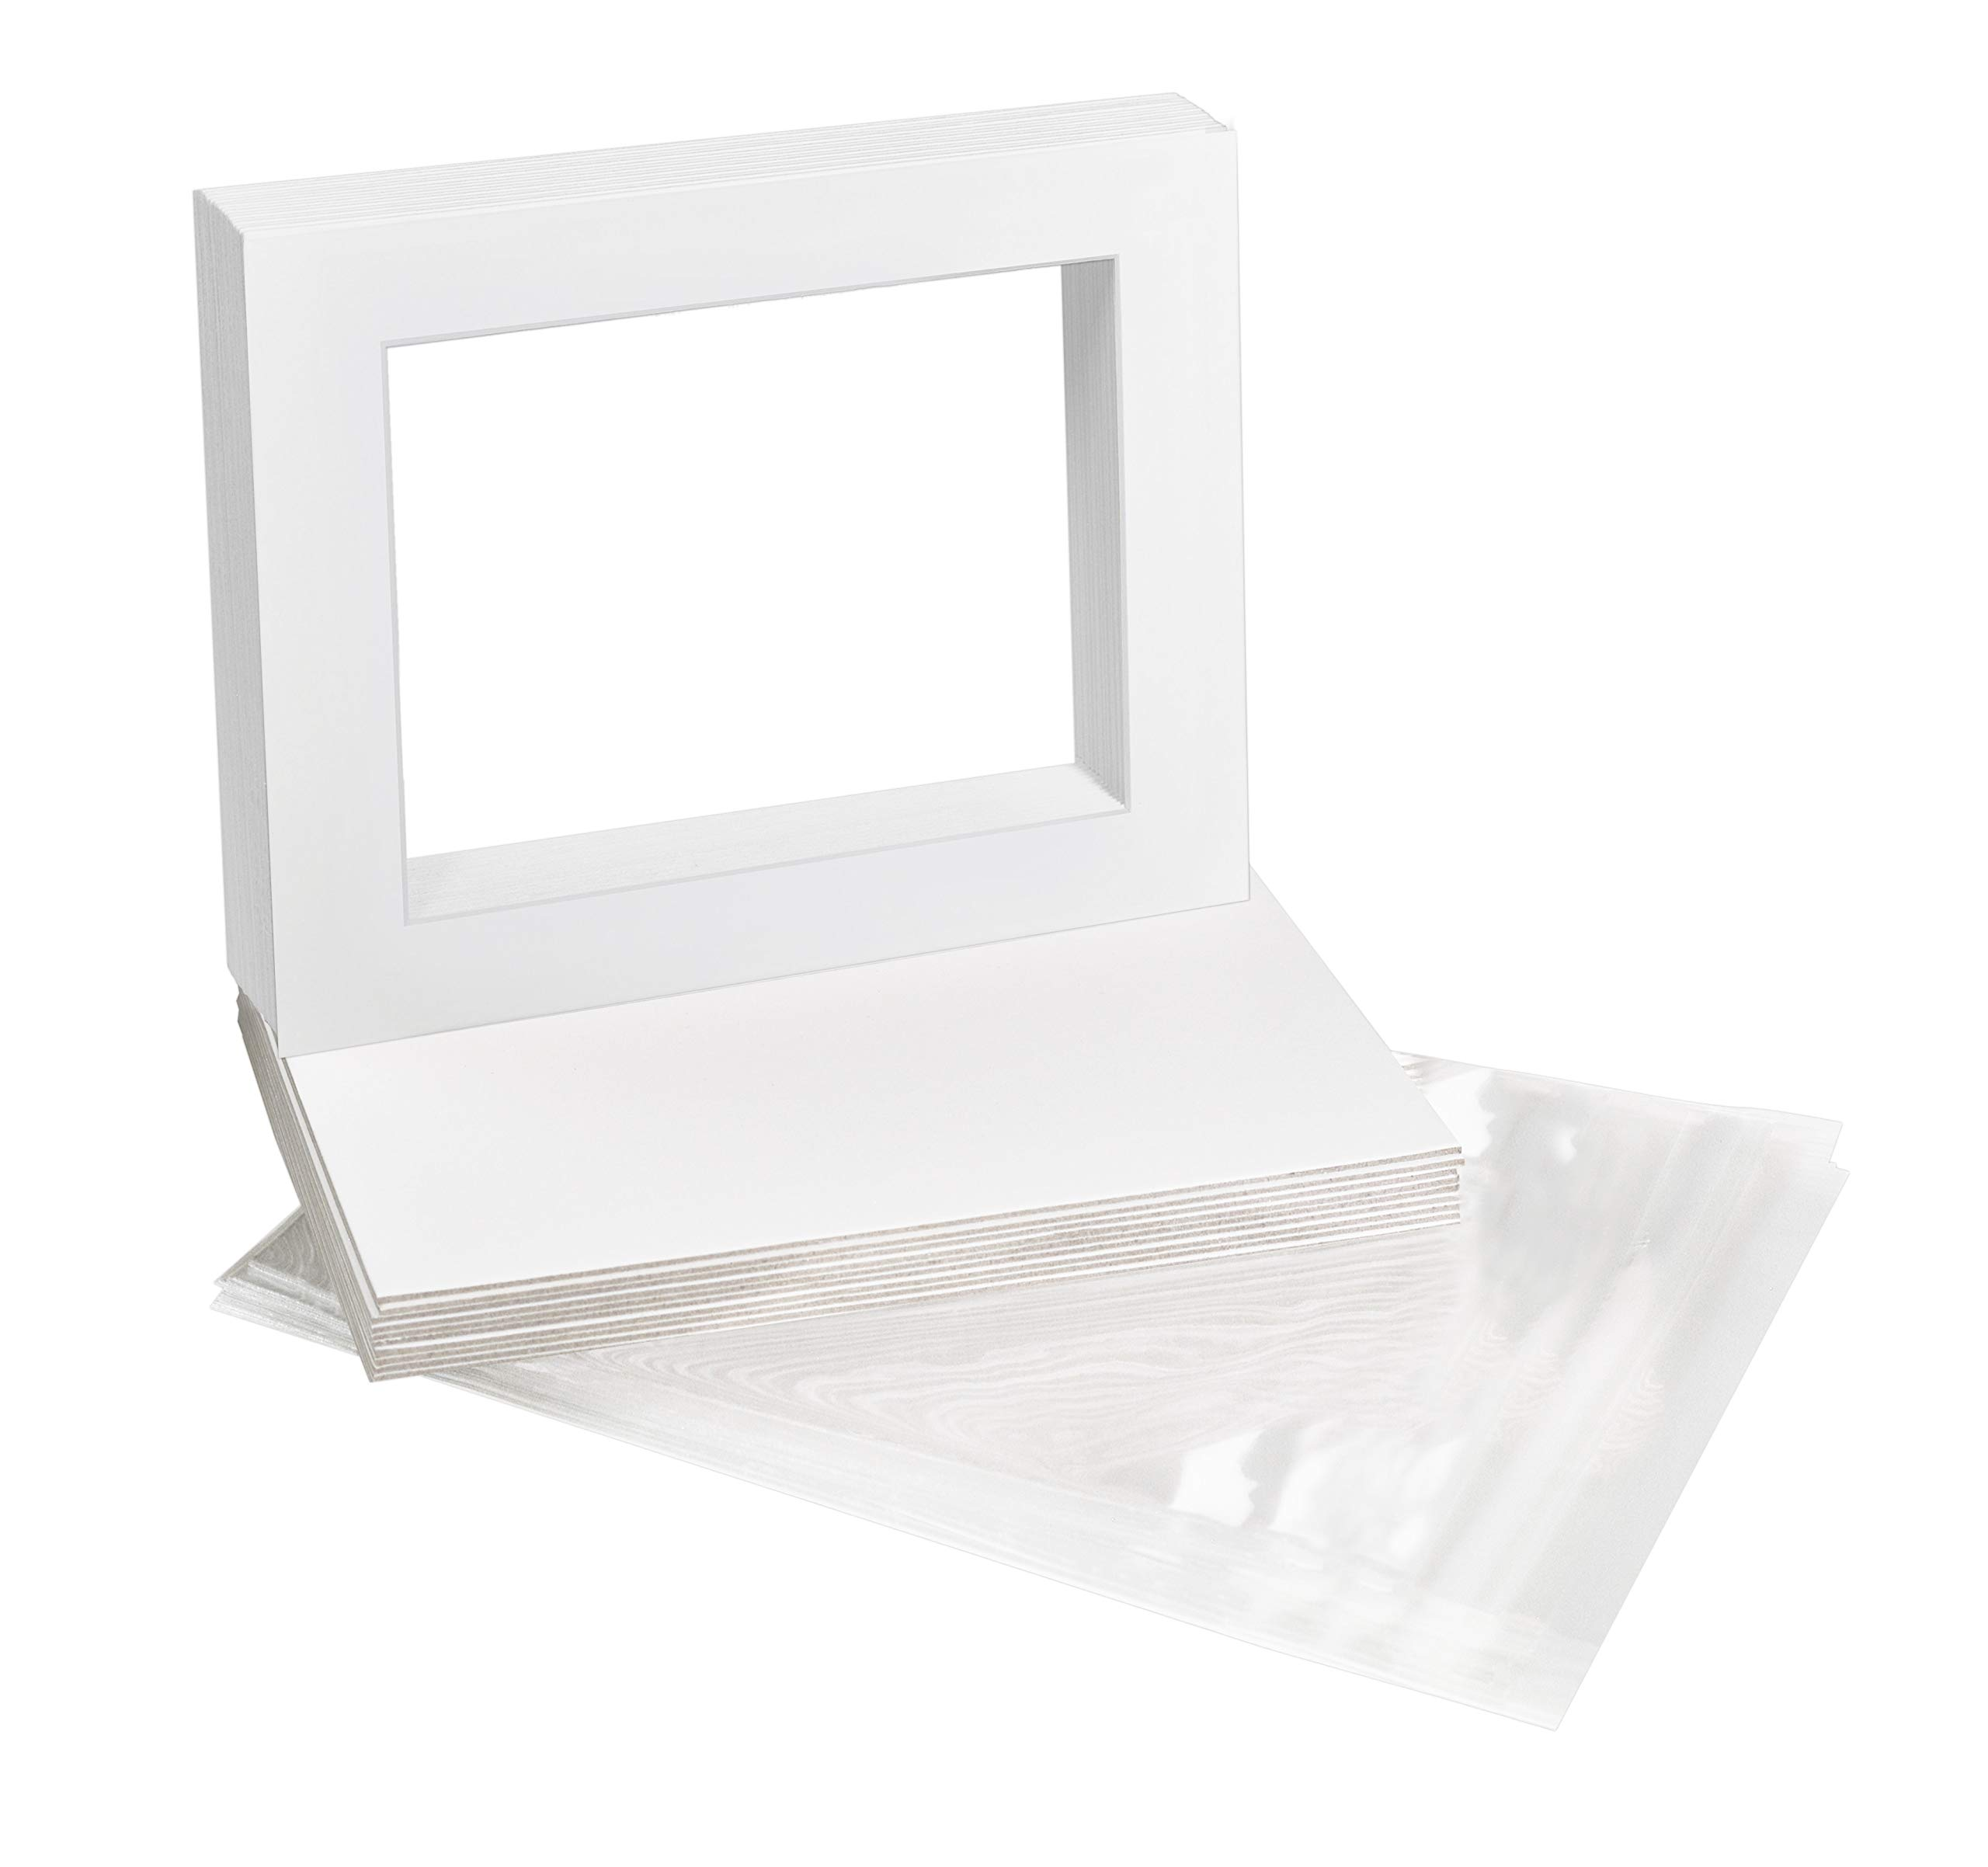 Golden State Art, Pack of 10, 11x14 White Picture Mat Full Set - Fit 8.5x11 Photo/Certificate - High Premier Acid Free Bevel Pre-Cut White Core Mattes - Includes 10 Backing Backer Board & Clear Bags by Golden State Art